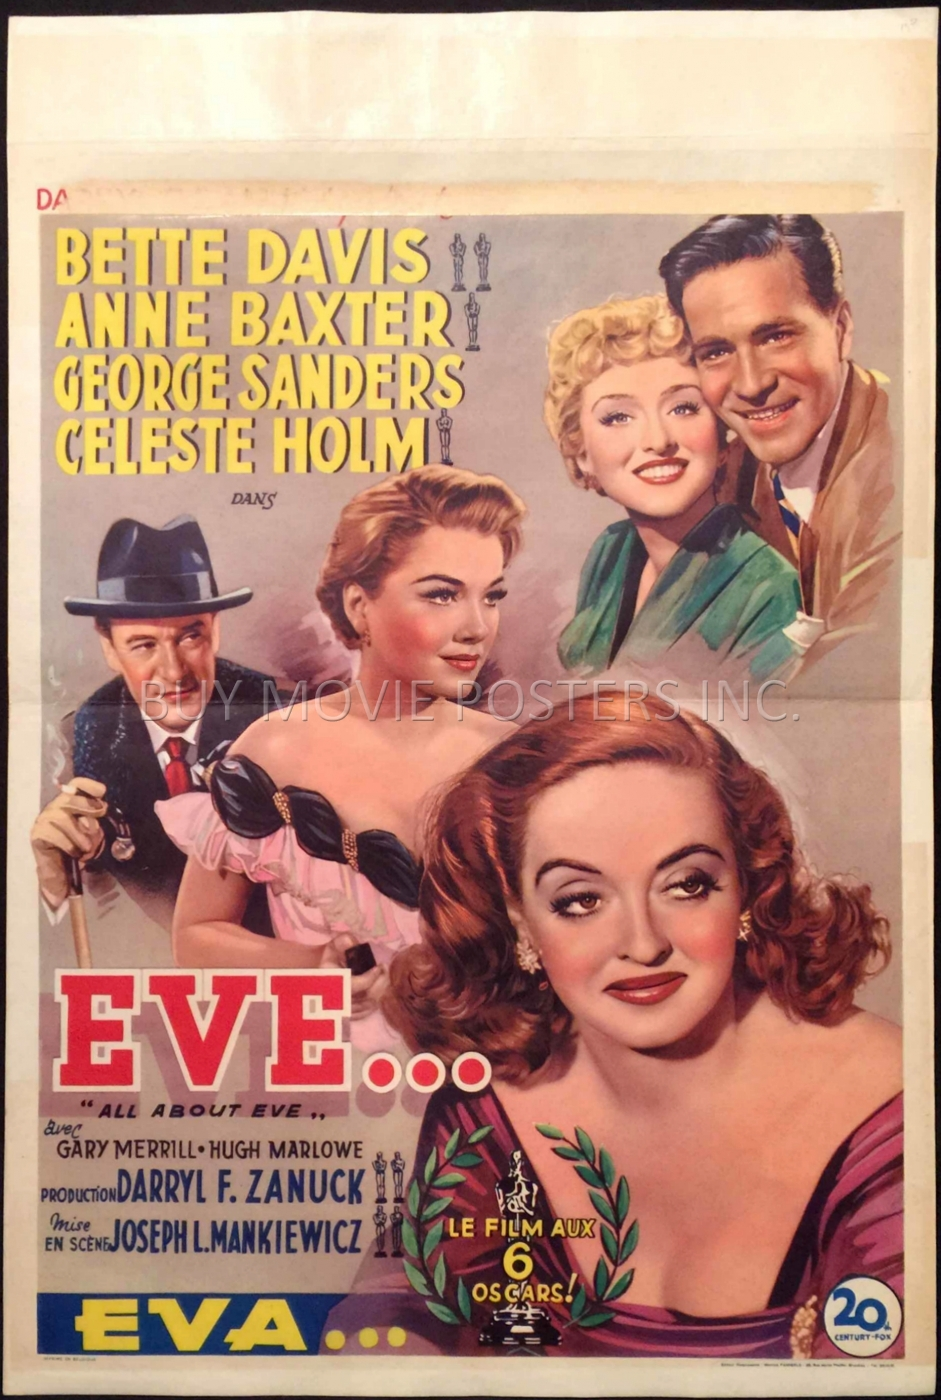 all about eve other sizes buy movie posters inc